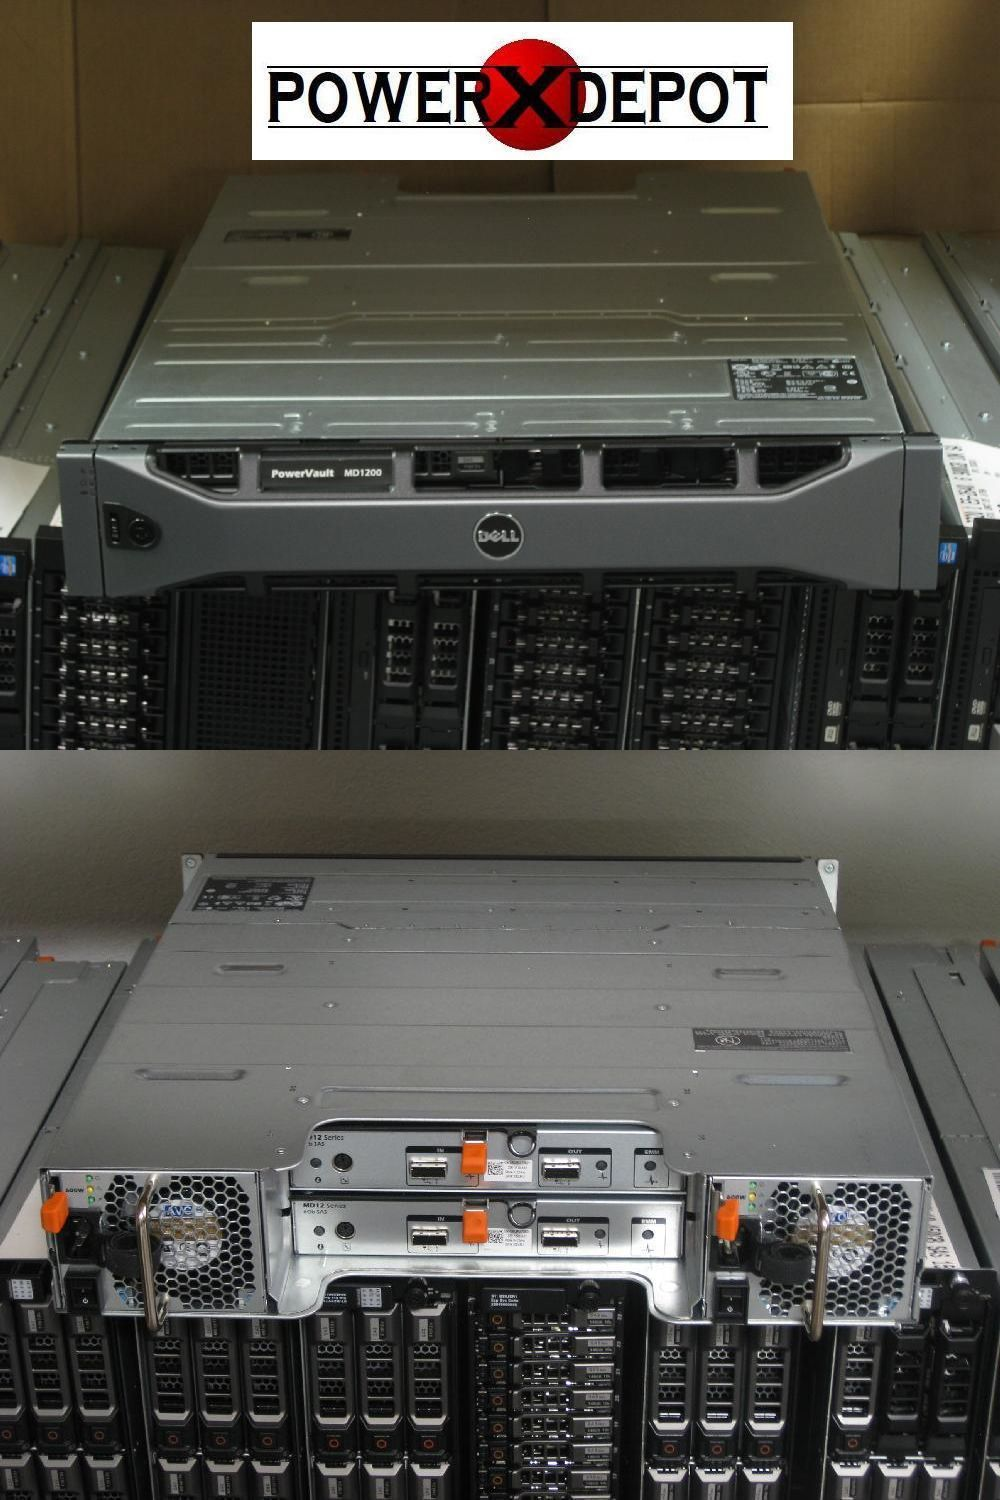 Nas Disk Arrays 64069 Dell Powervault Md1200 12 X 1tb Sas Dual Emm Dual Power Buy It Now Only 1625 On Ebay Arrays Powervault Power Ebay Sas Dual